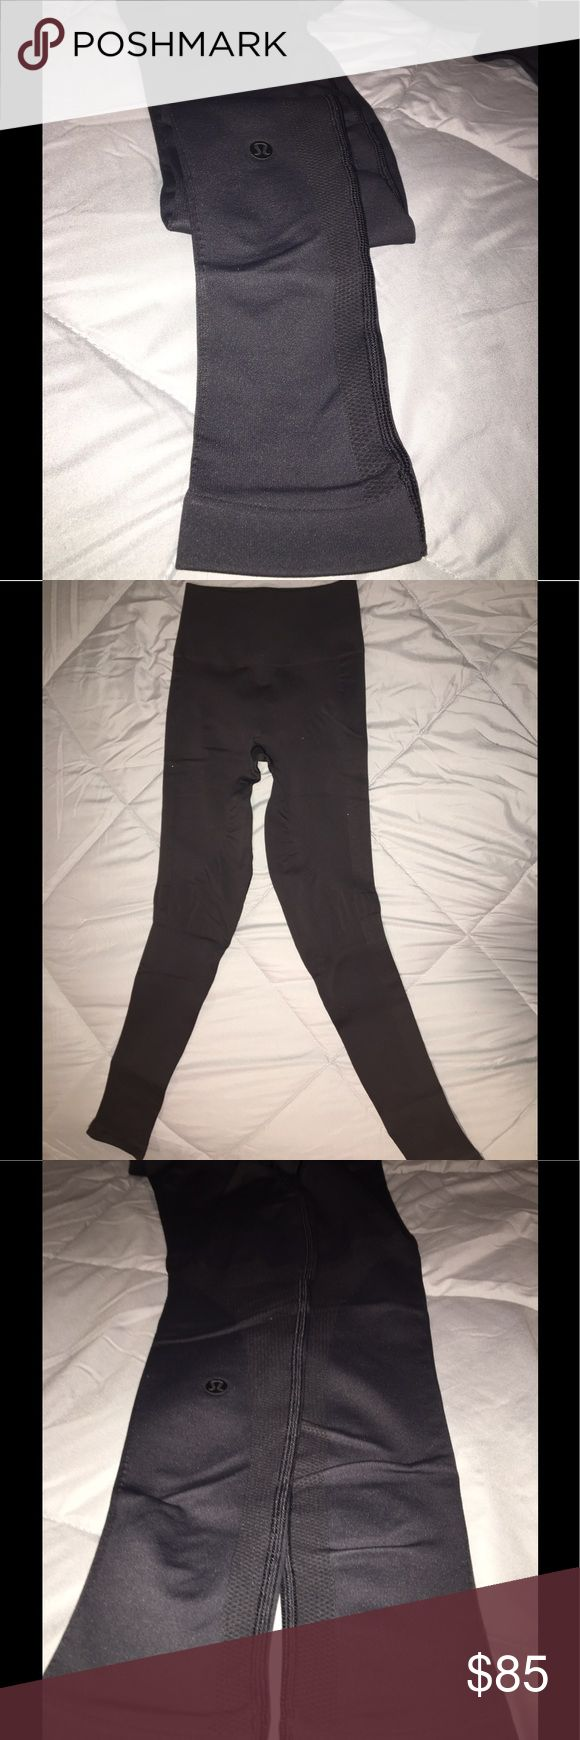 Lululemon Leggings - NEVER WORN! extra hold fit Never worn - from last year, size 2. Tight charcoal leggings, extra support and hold lululemon athletica Pants Leggings